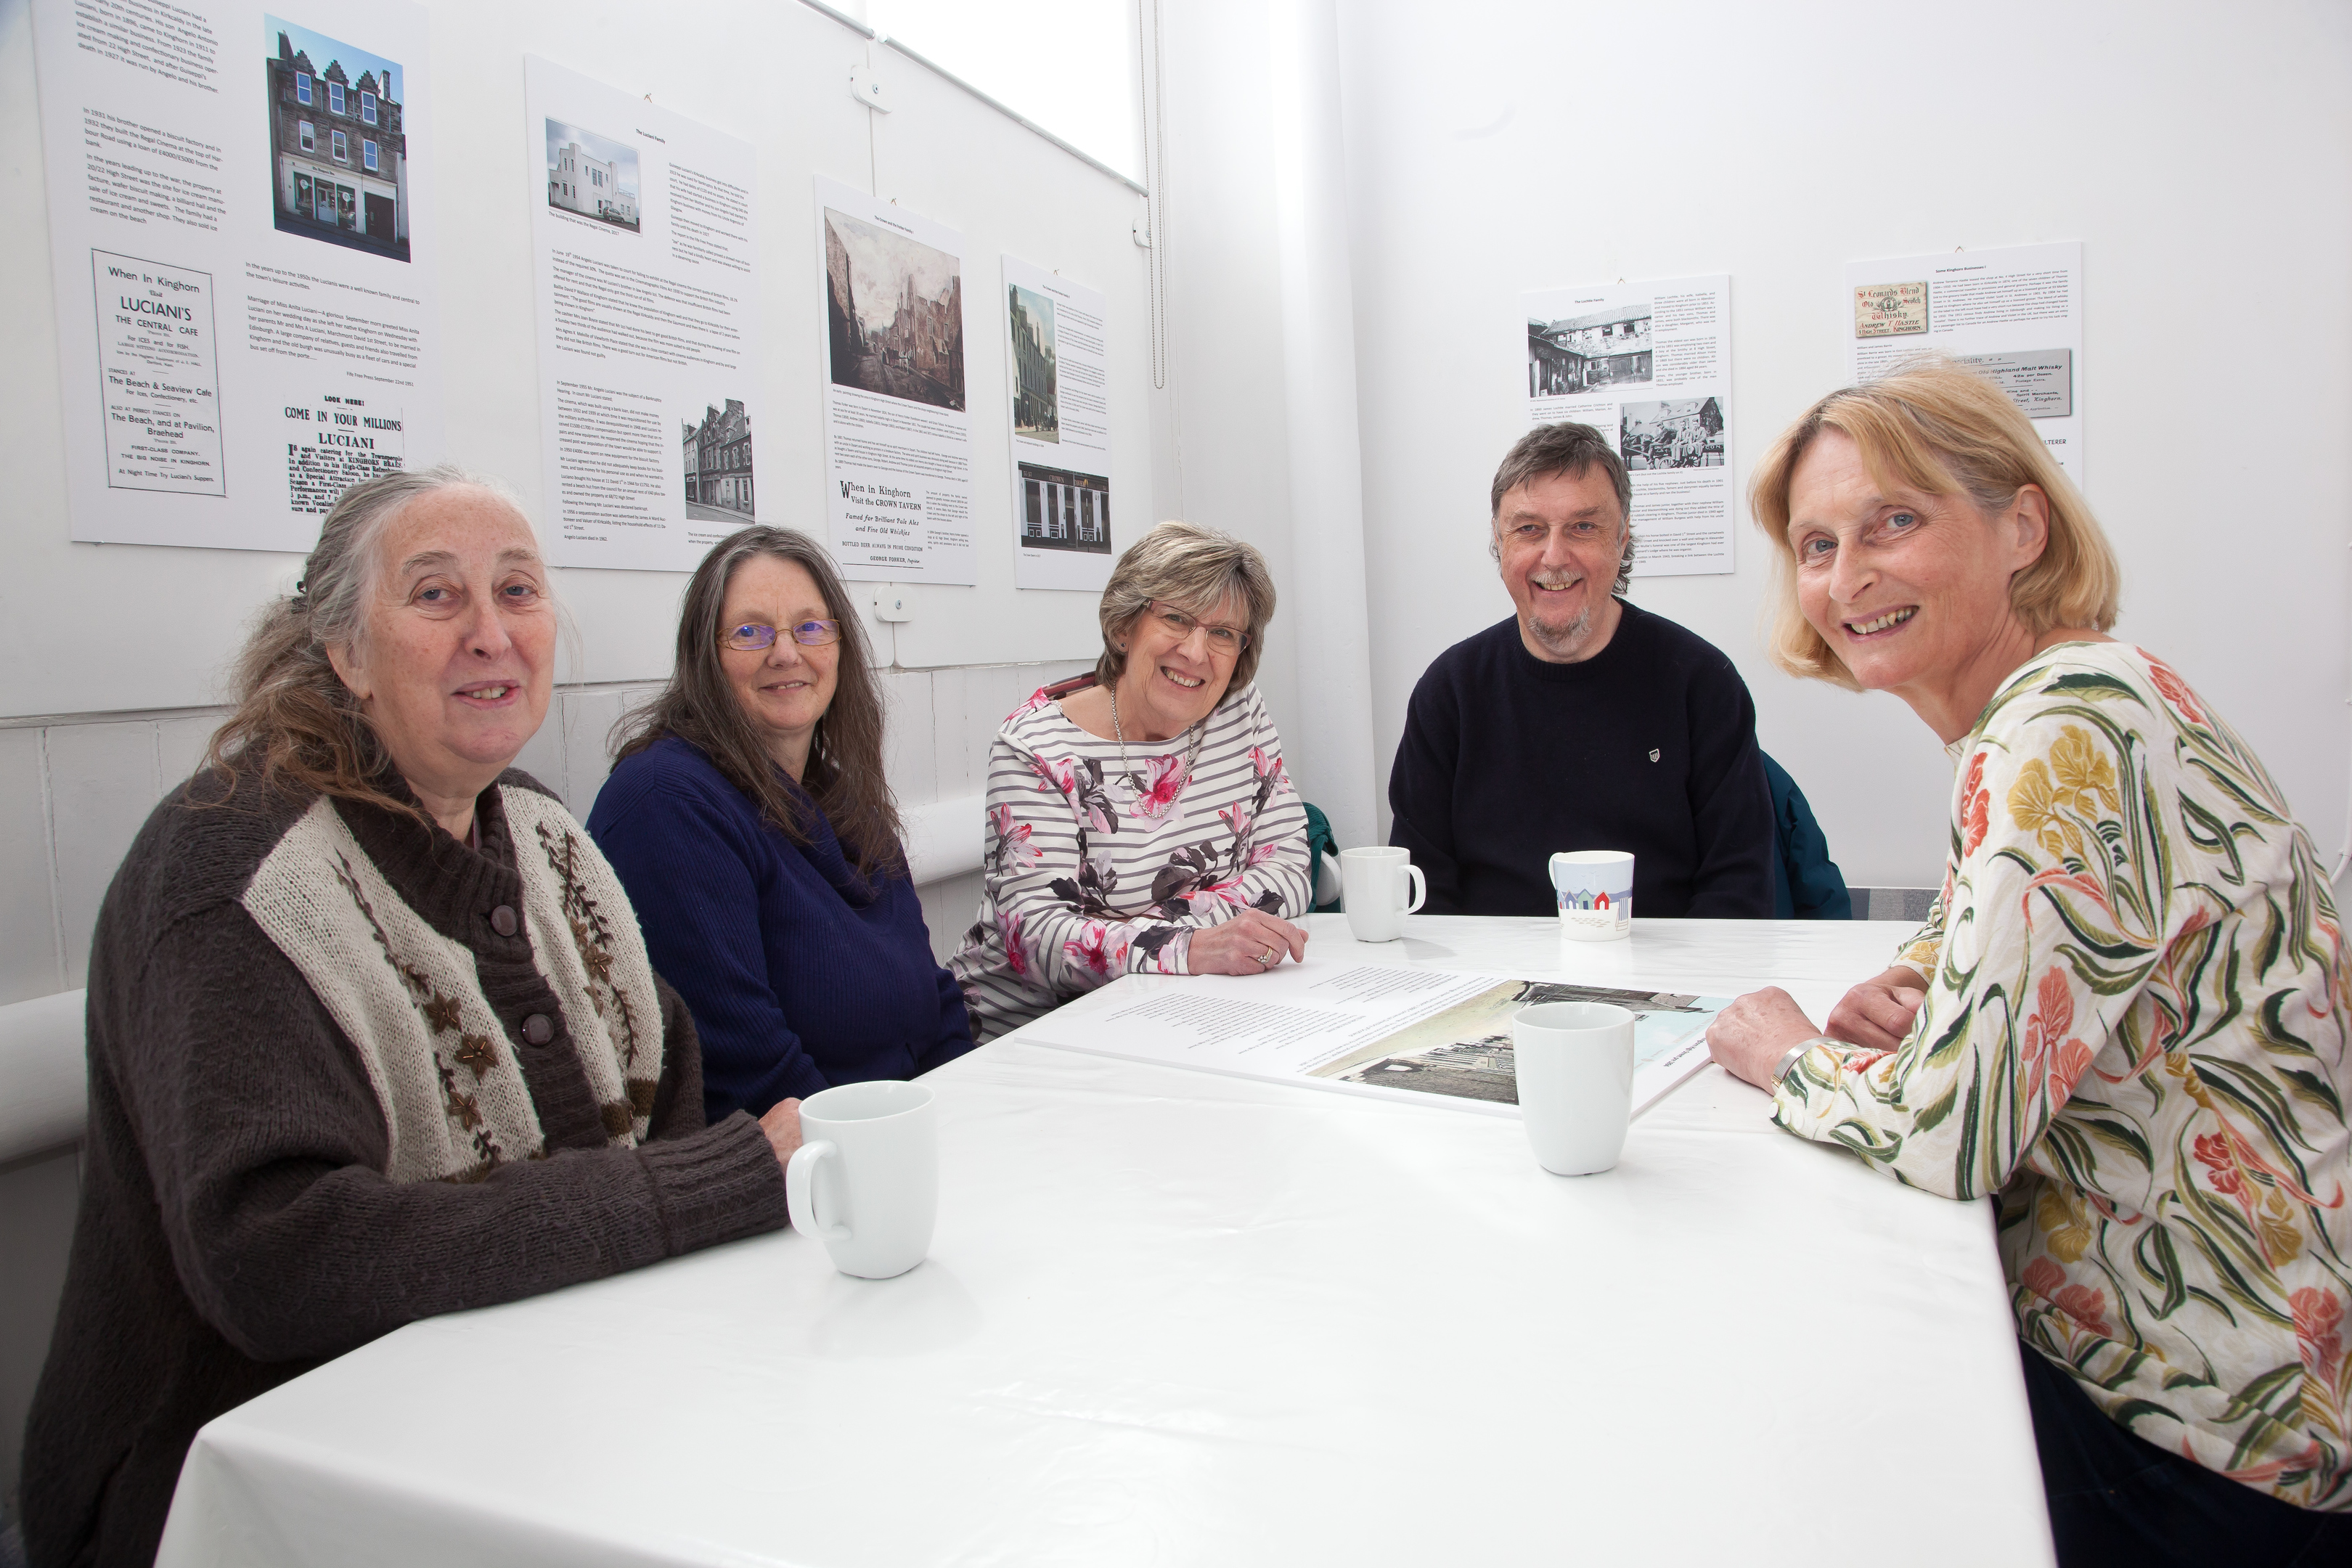 The committee of the Royal Burgh of Kinghorn Historical Society celebrate a Heritage Lottery Fund award of £42,100 for a three-year heritage project in Kinghorn. From left: Carol Rhodes, Catharine Bain, Ginny Reid, Stan Guthrie and Anne MacIver.